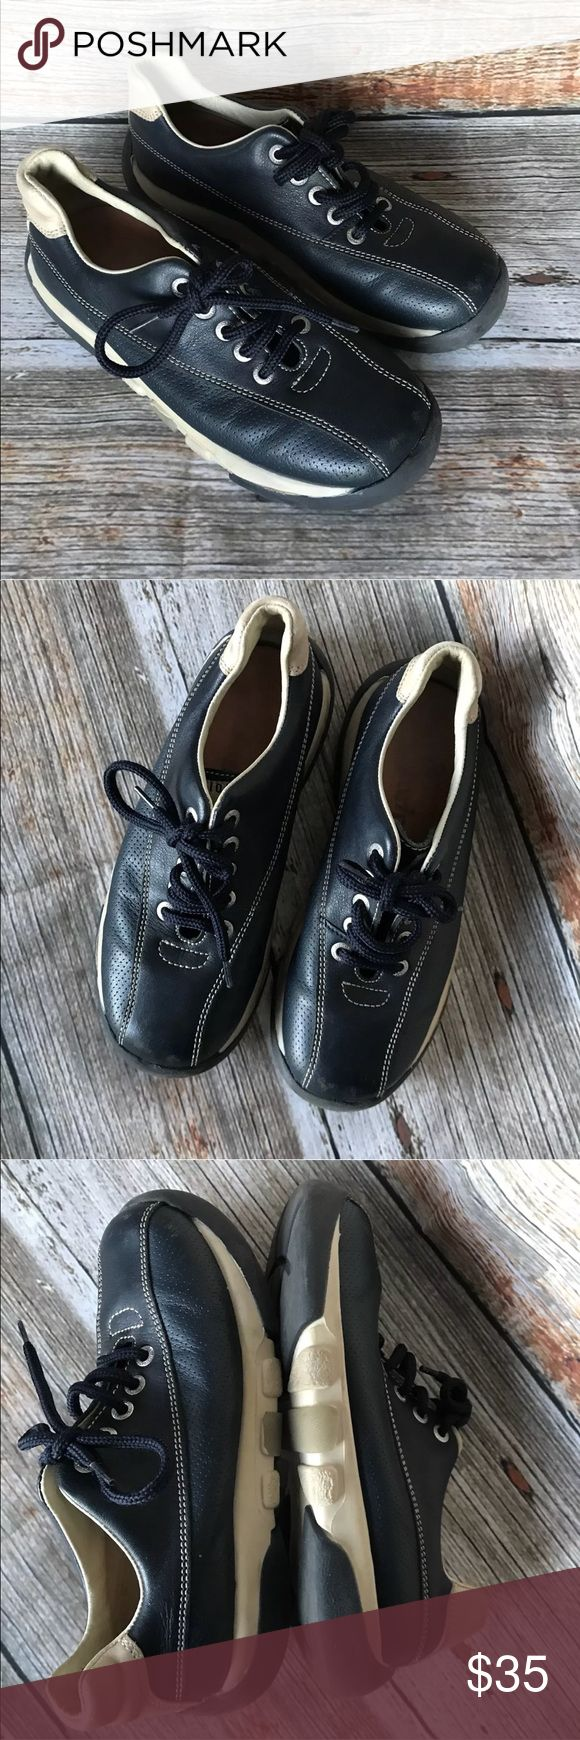 Naturino Falc Blue Leather kids shoes size 2 Genuine leather with the Vero Cuoio stamp of approval.  Boys walking school shoes.  Size 33 youth  USA 2  Navy blue with tan  Smoke/Pet free home Naturino Shoes Sneakers